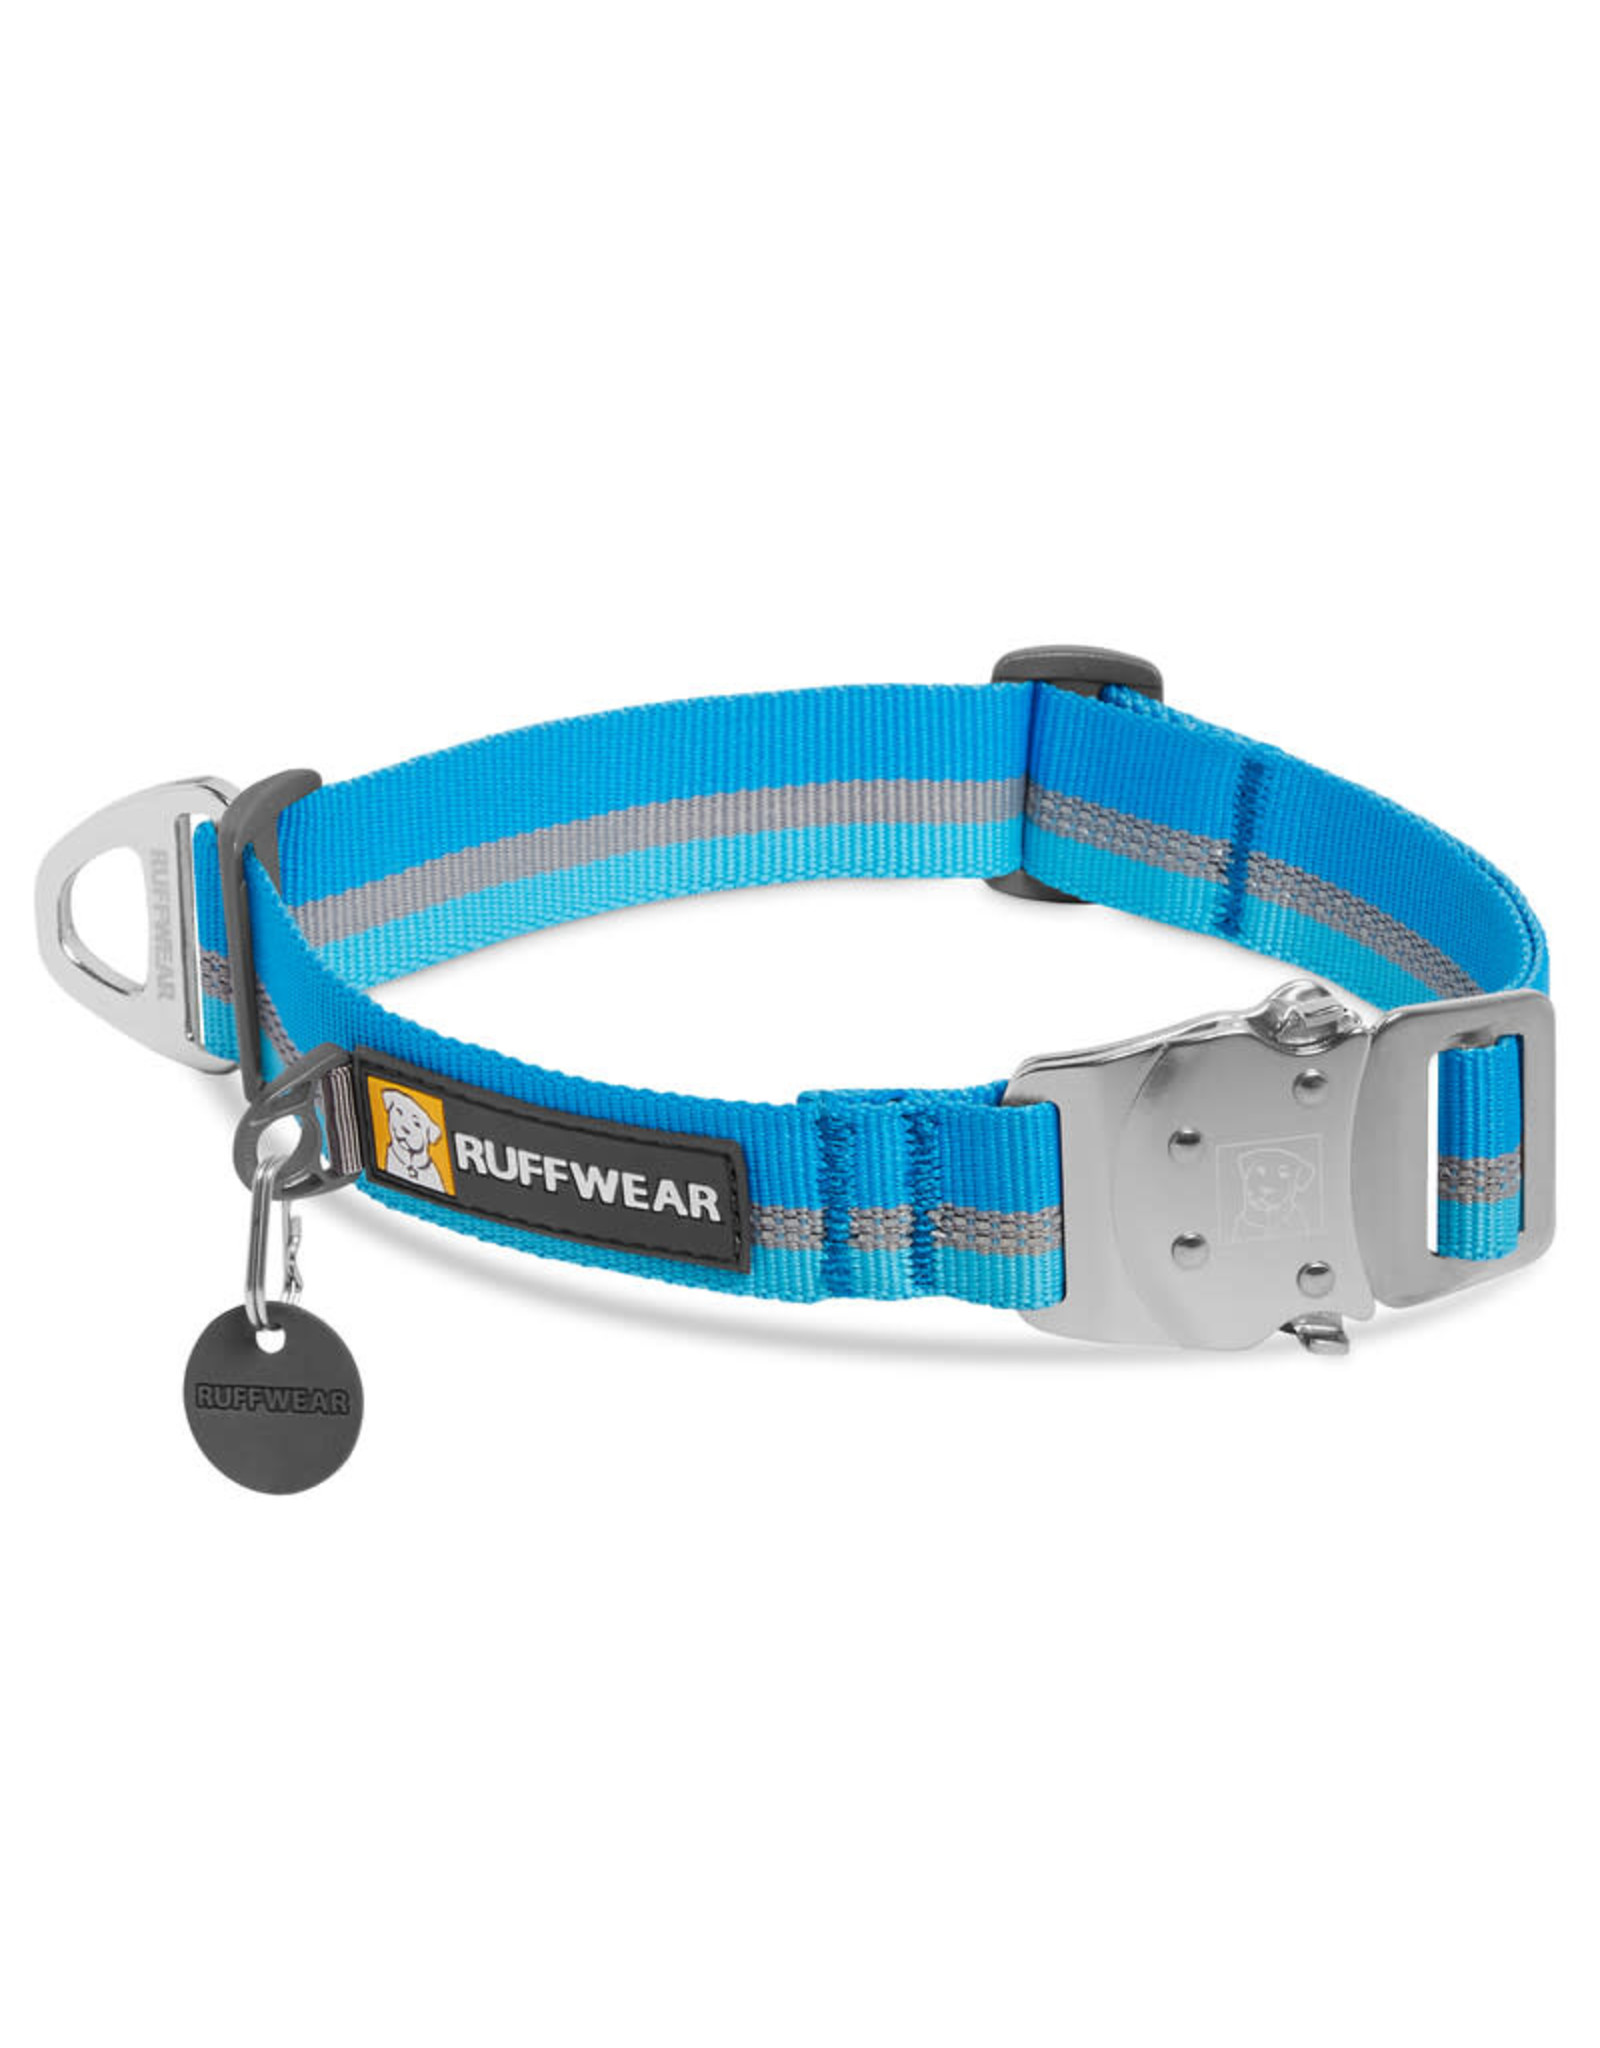 Ruffwear Top Rope Collar: Blue Dusk, 11 - 14 in